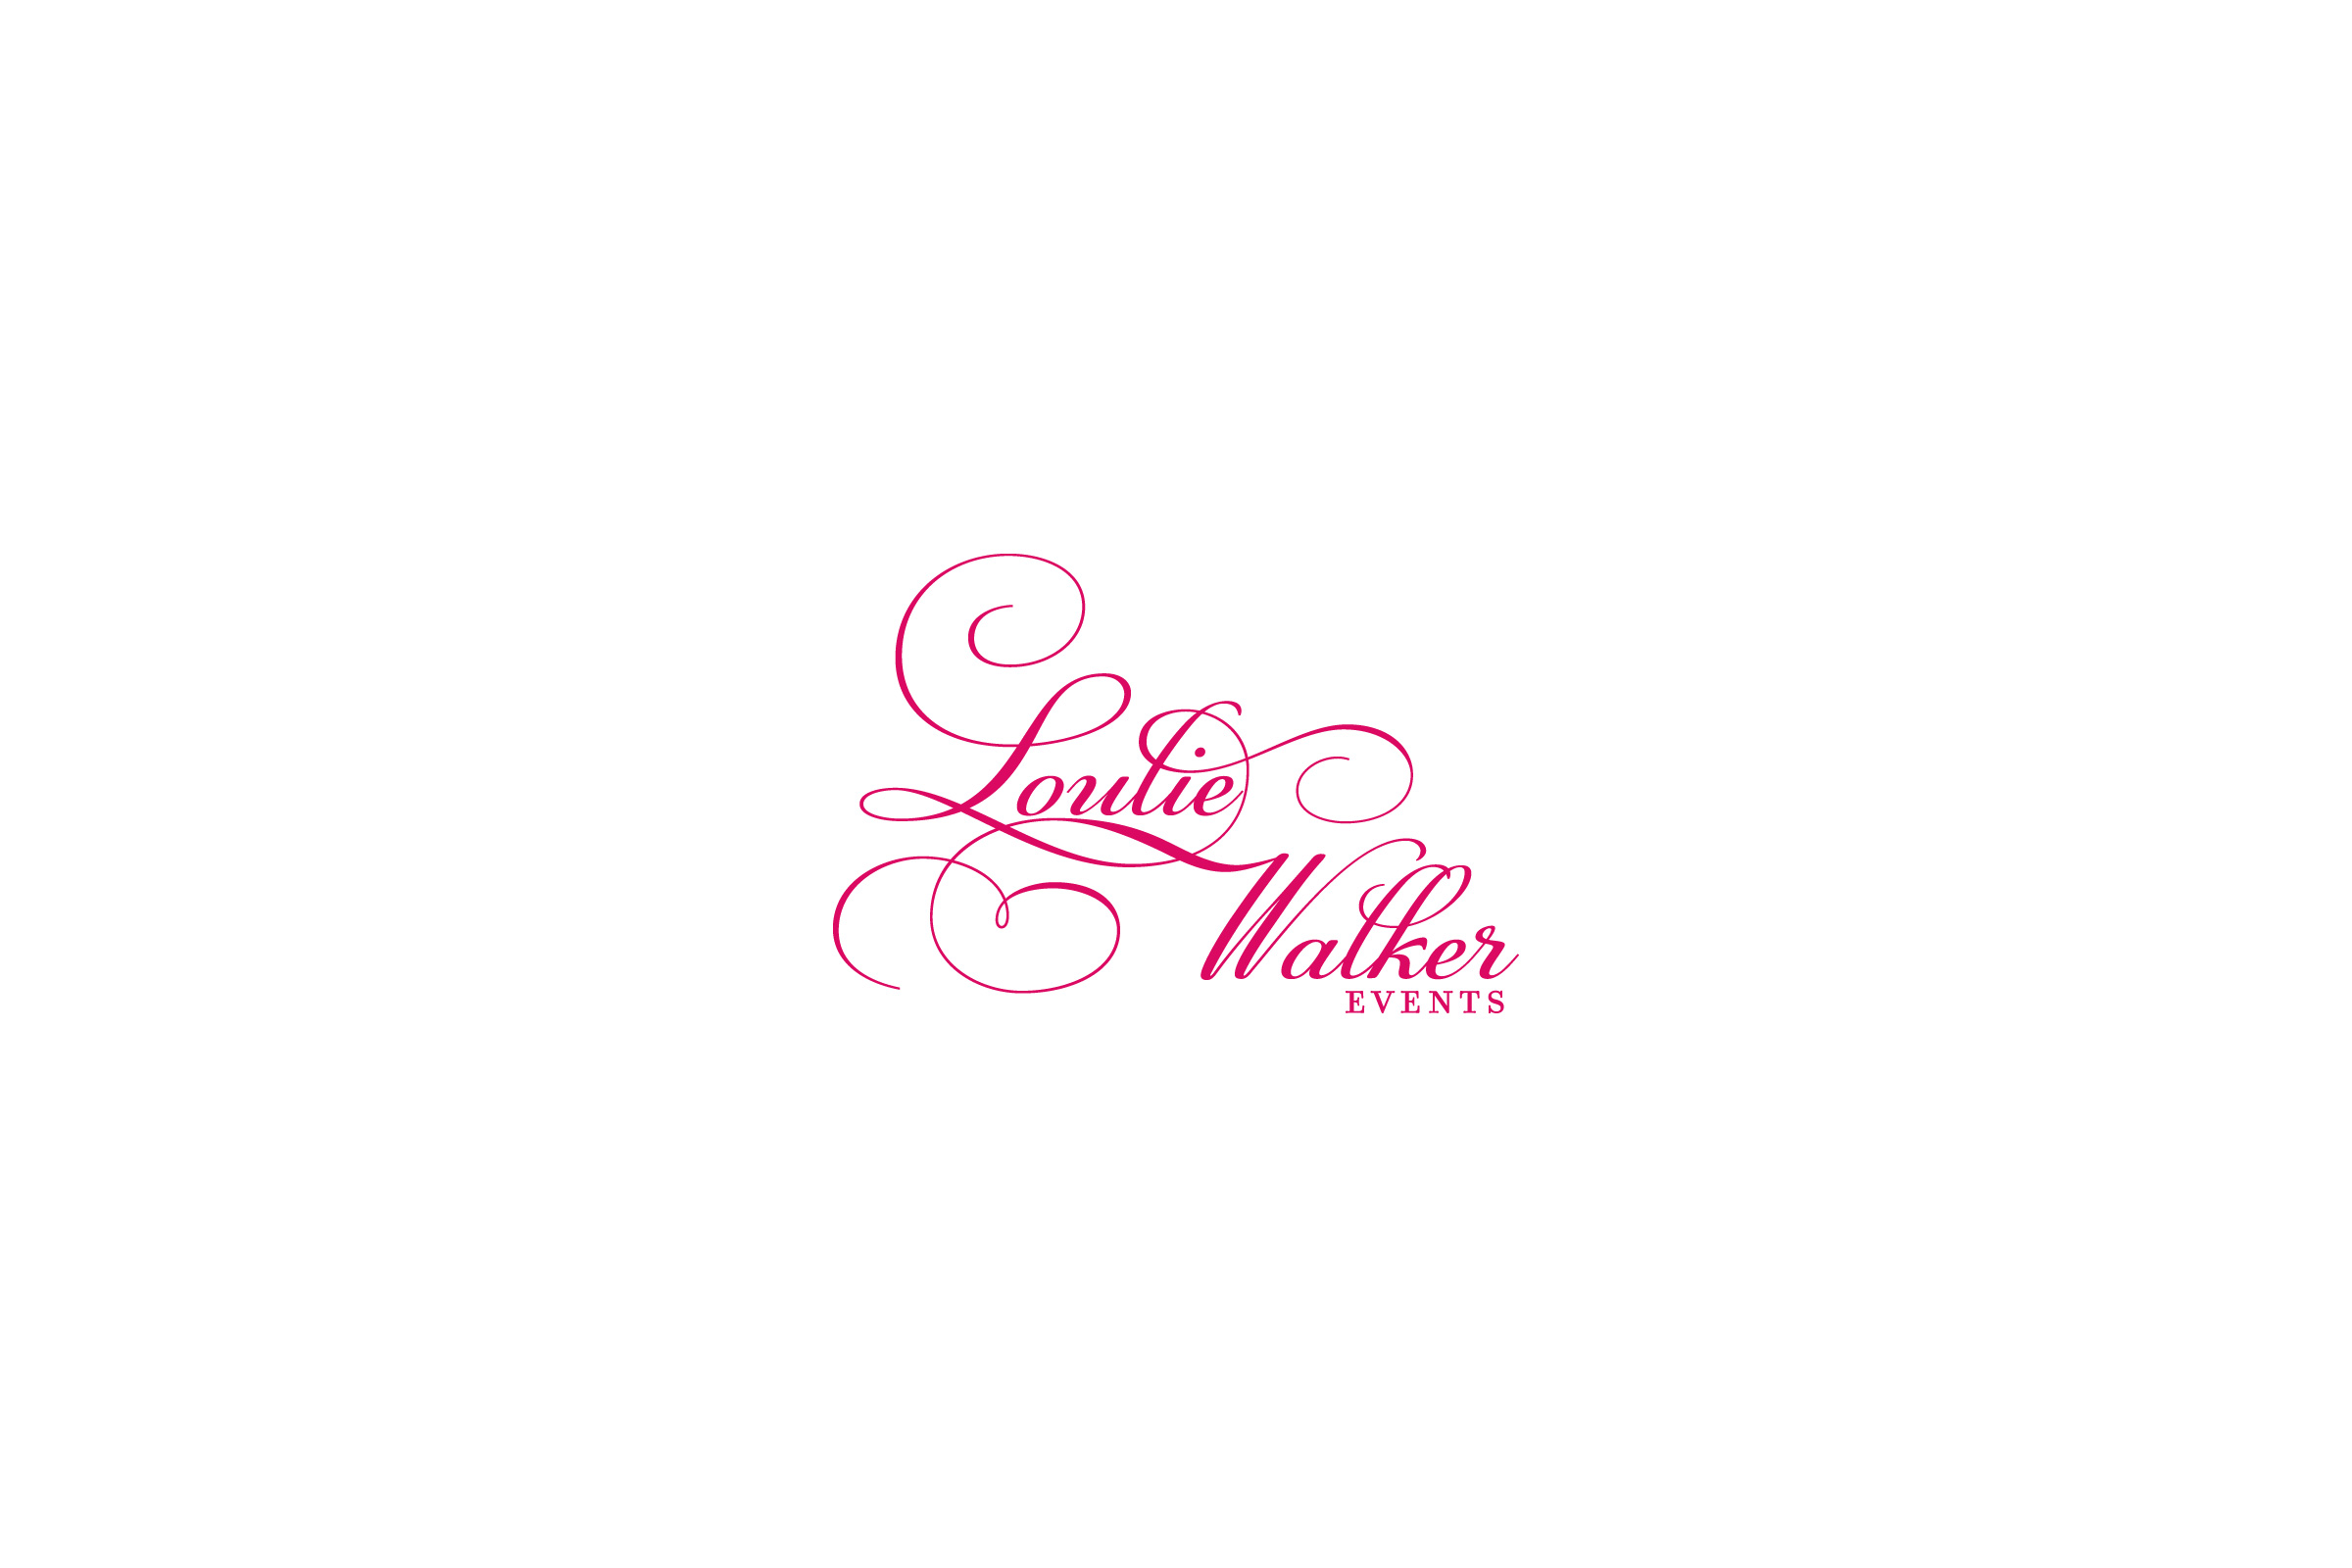 Loulie Walker Events